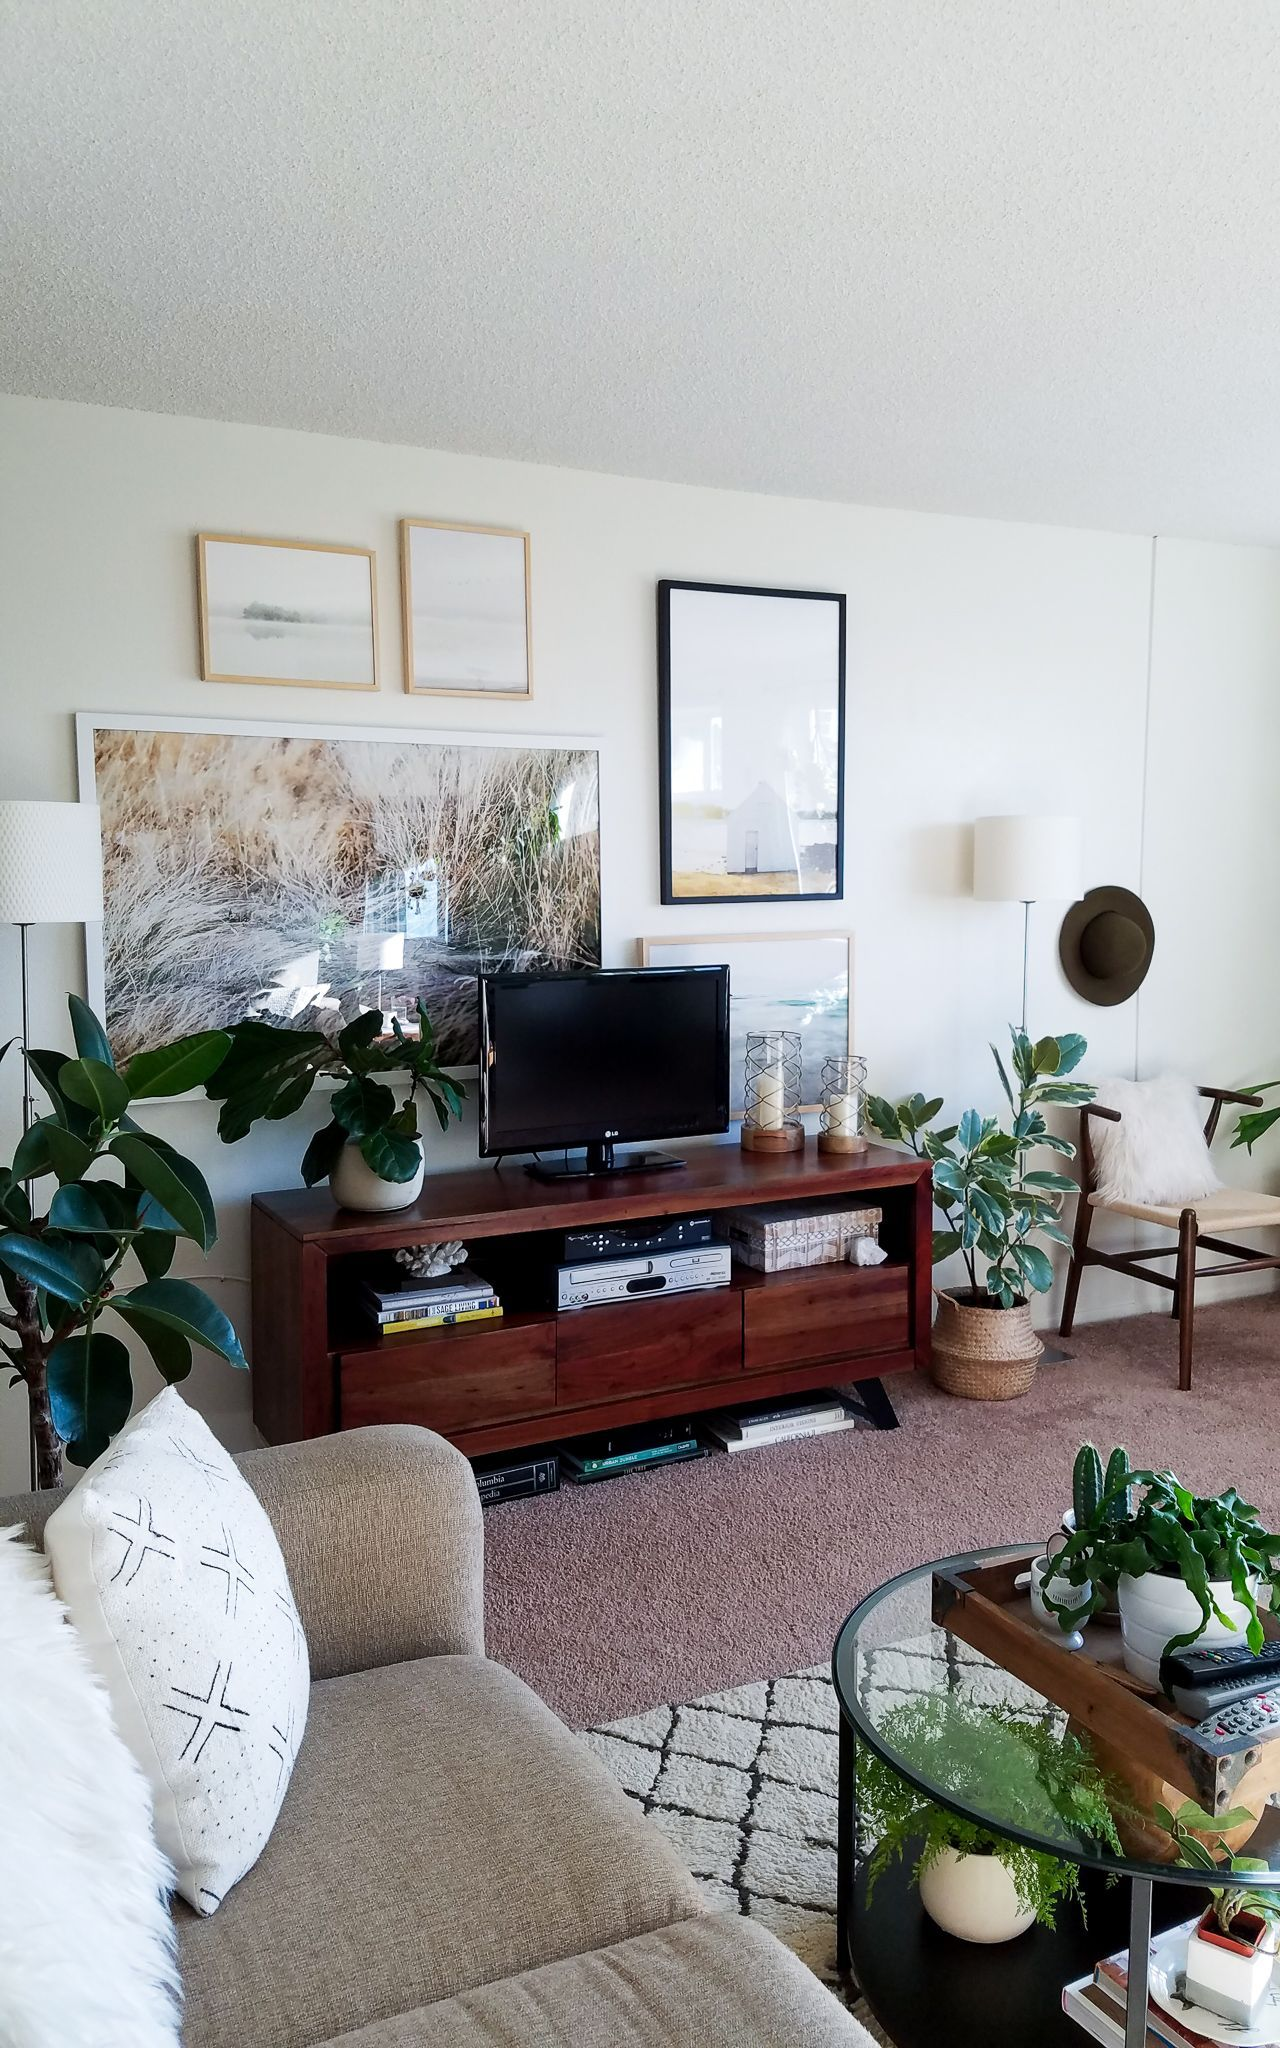 Trending lounge renovations june 2018 small apartments house plants decorating kitchen